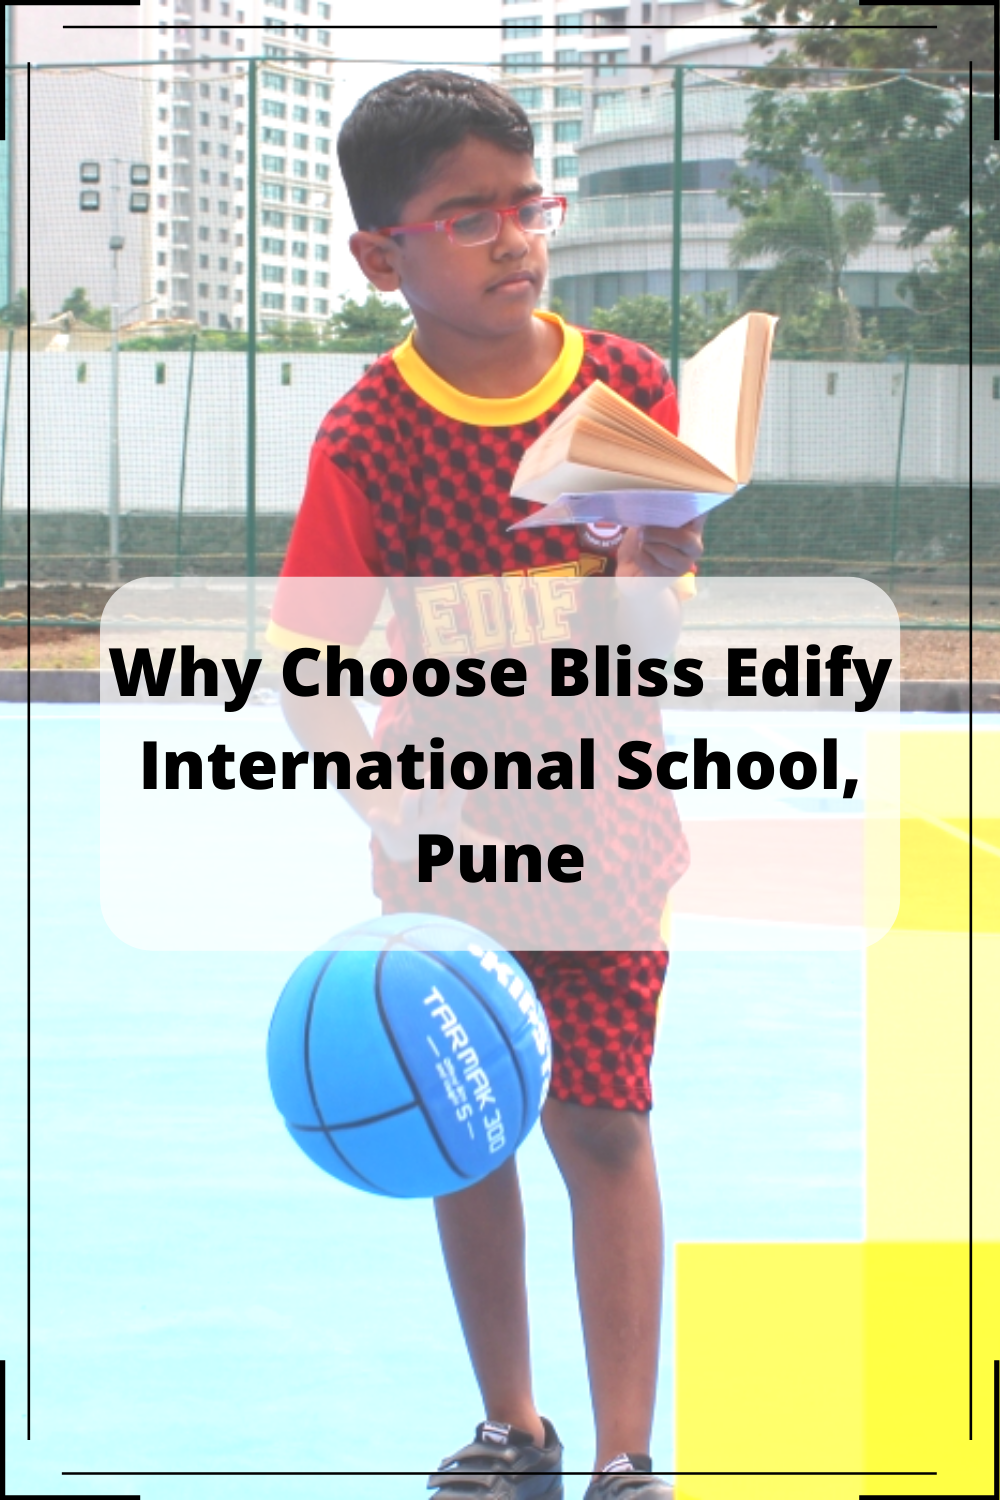 bliss edify international school pune